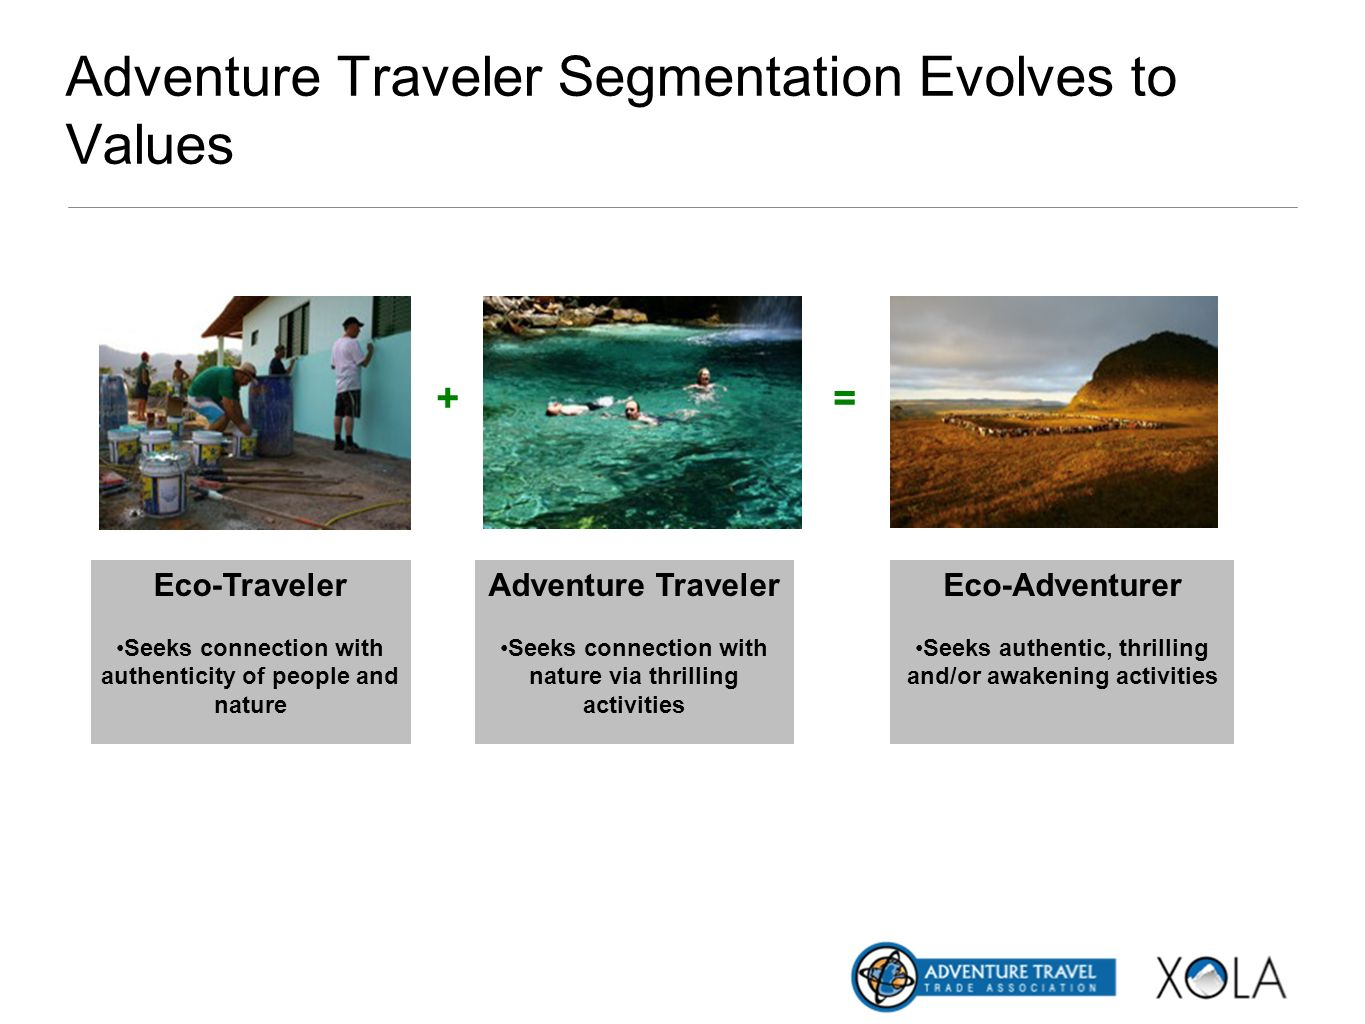 Adventure Traveler Segmentation Evolves to Values